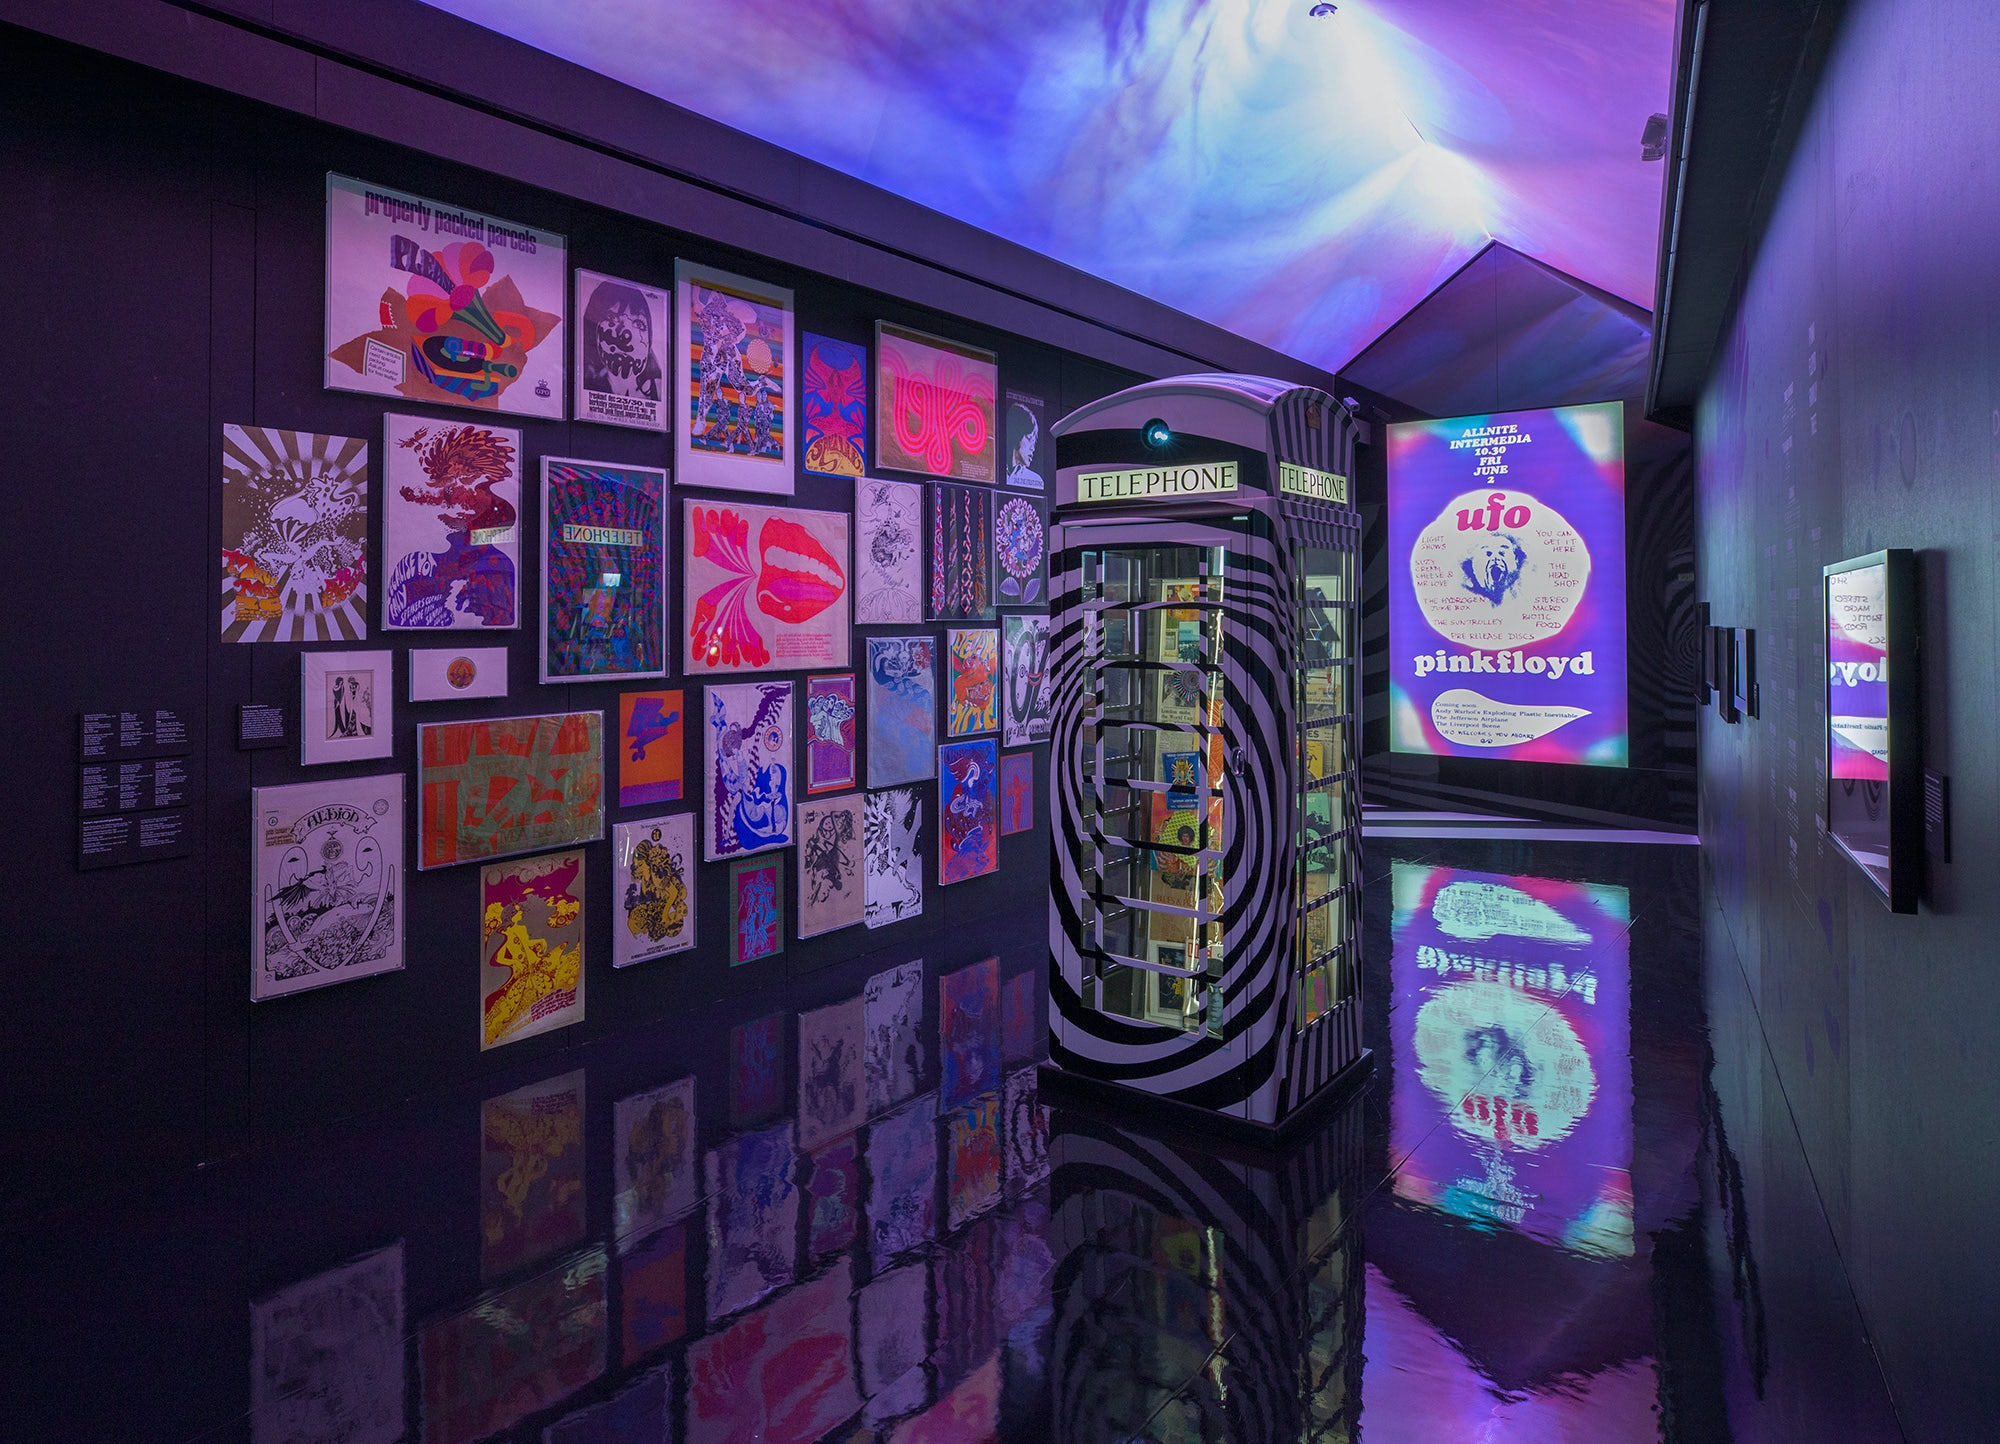 The Pink Floyd Exhibition: Their Mortal Remains presented by London's V&A and Michael Cohl's Iconic Entertainment. Sound by Sennheiser. Image courtesy of the V&A